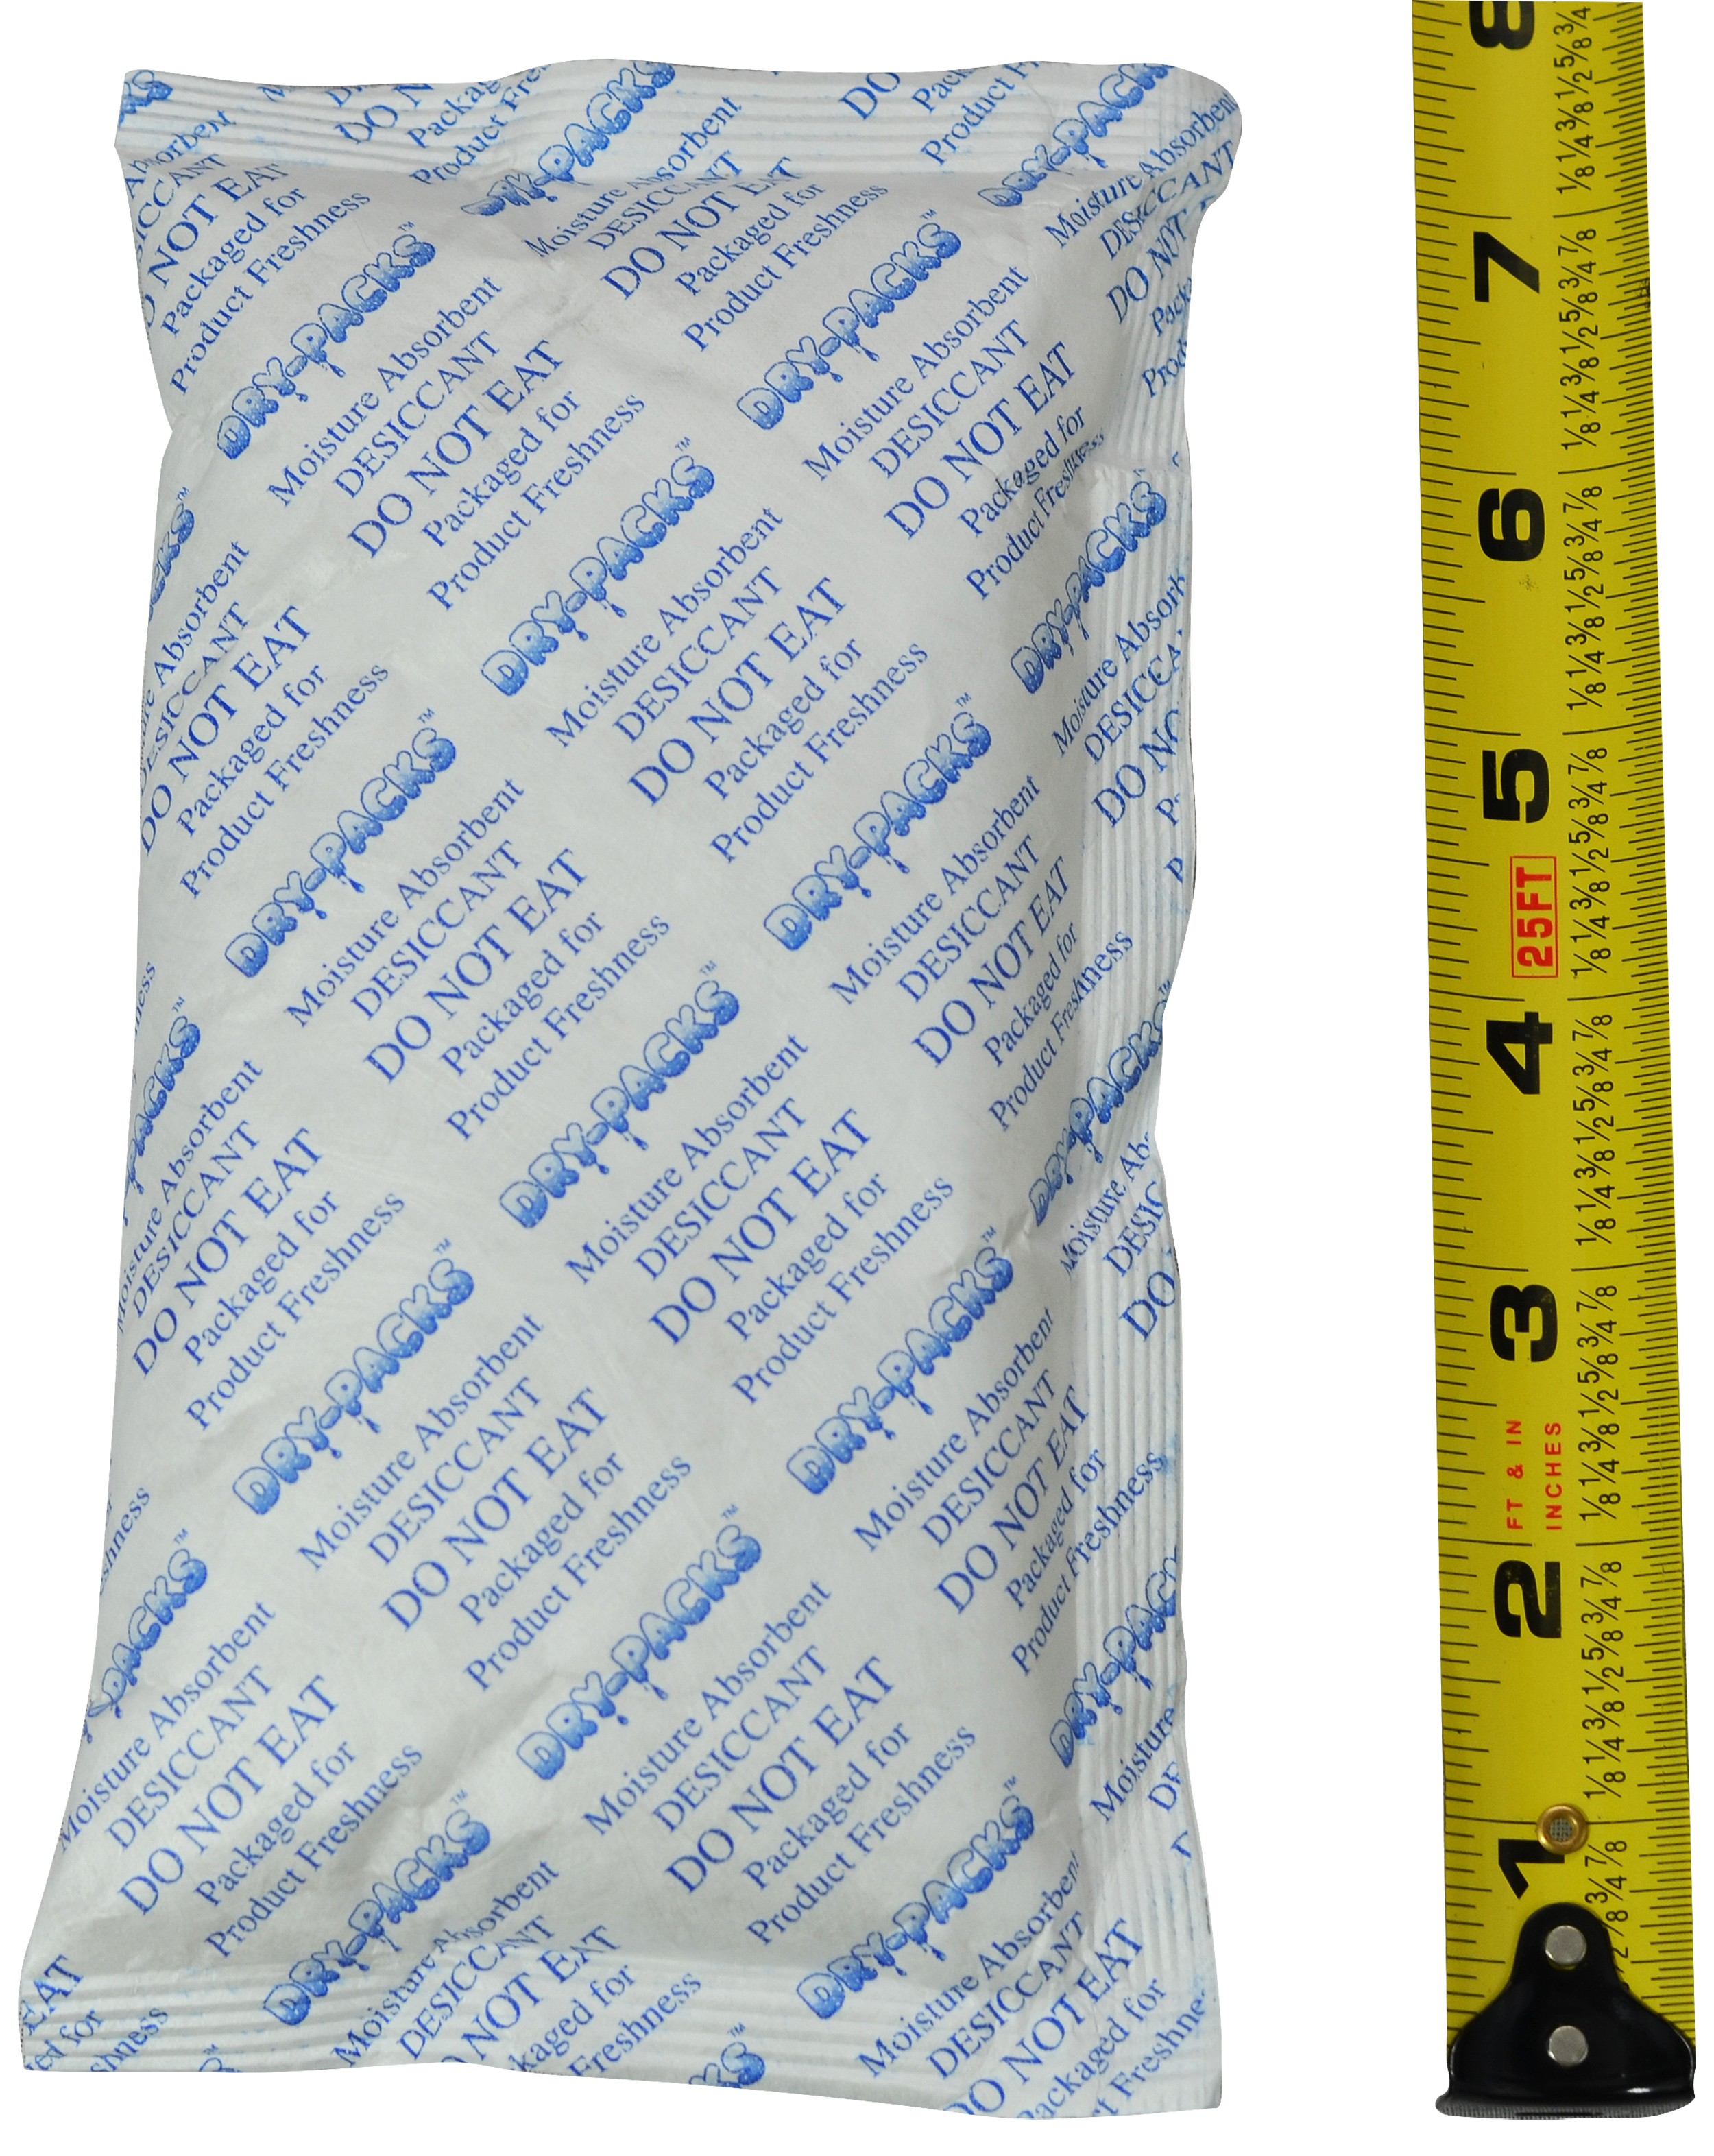 224 Gram (8 Unit) Silica Gel Packet - Tyvek